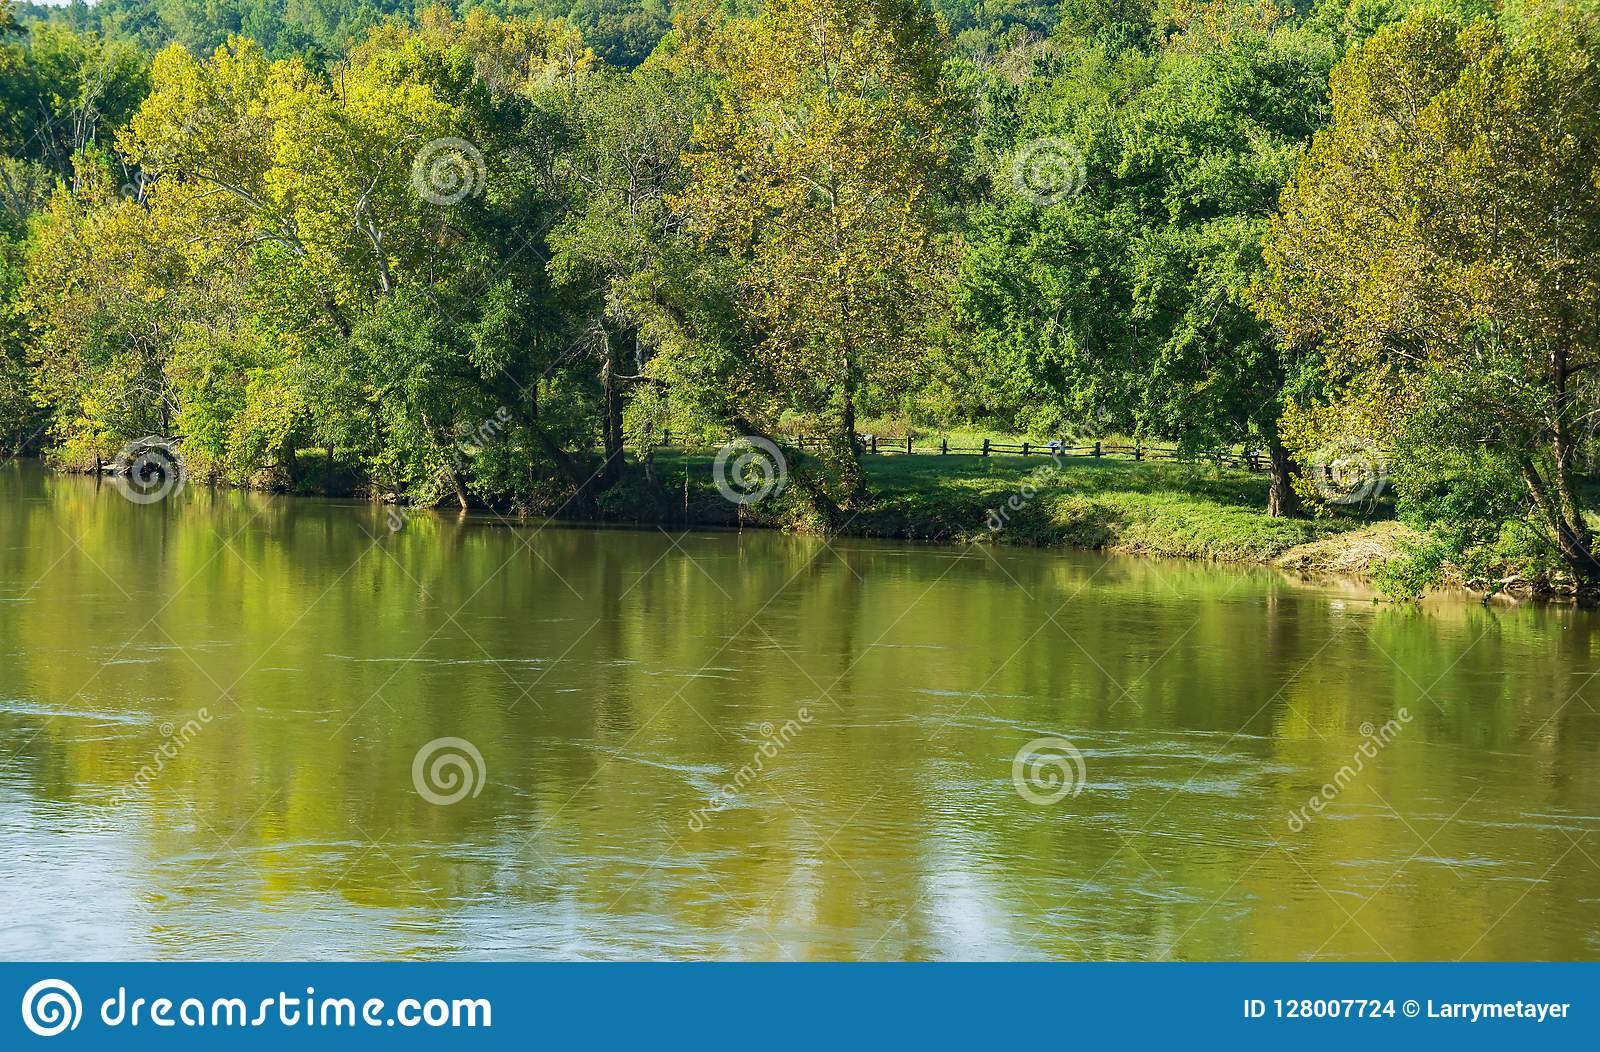 Trees Showing Early Fall Colors on the James River, Virginia, USA